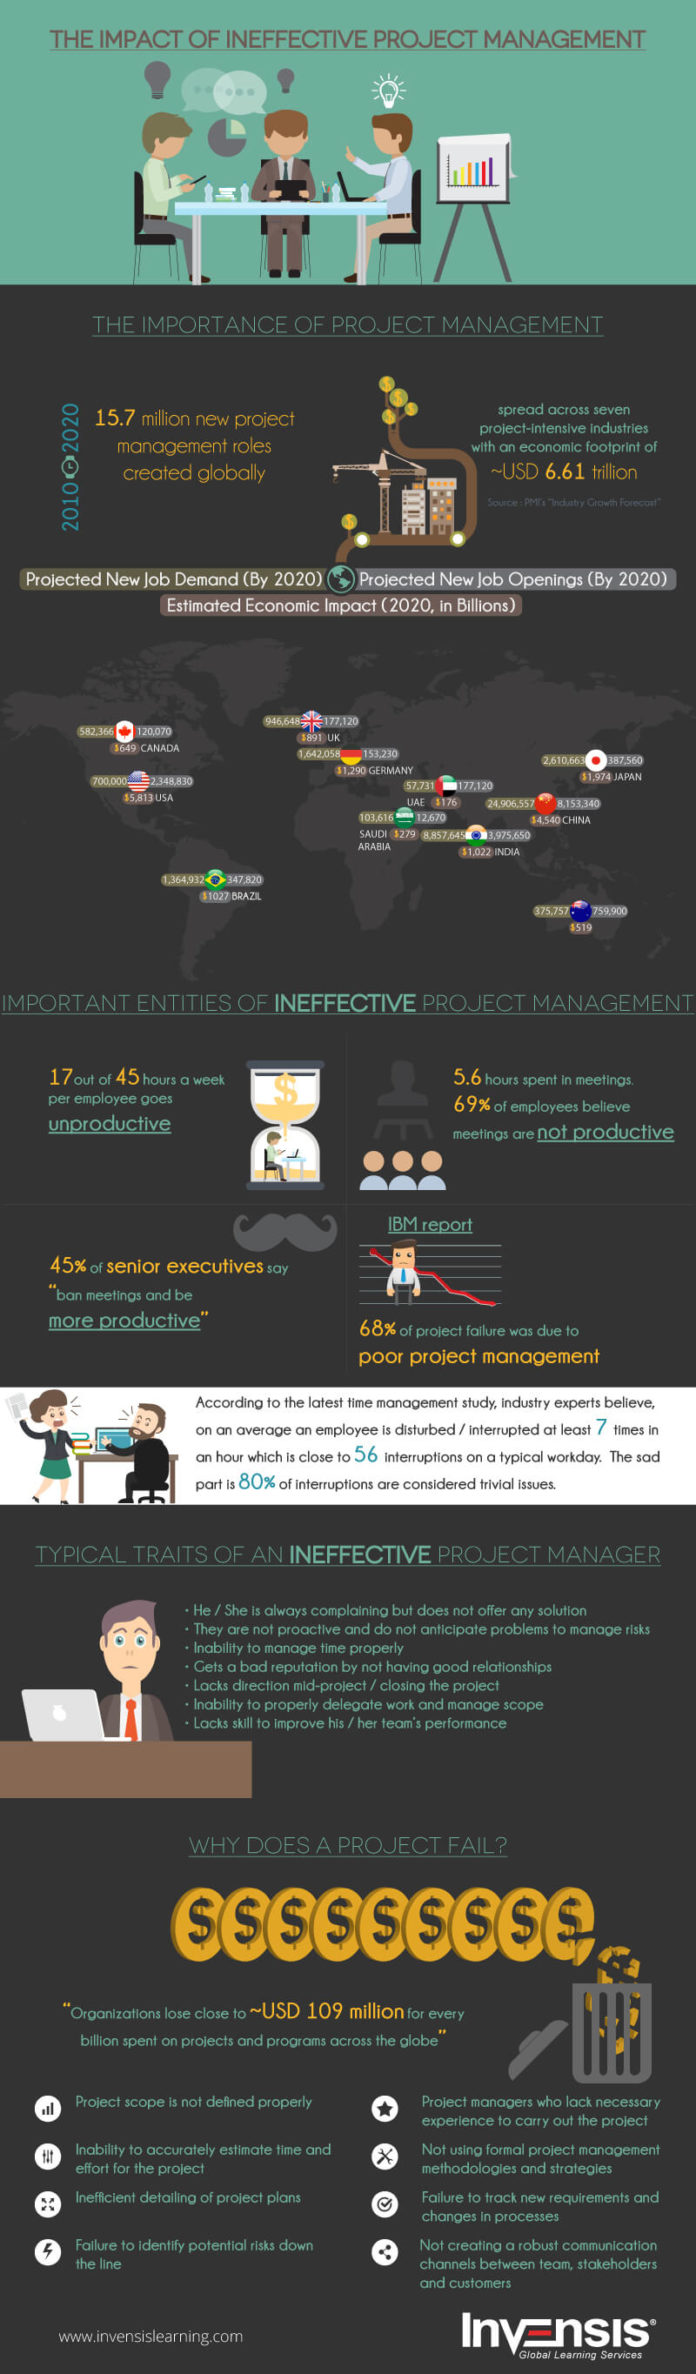 The Impact of Ineffective Project Management